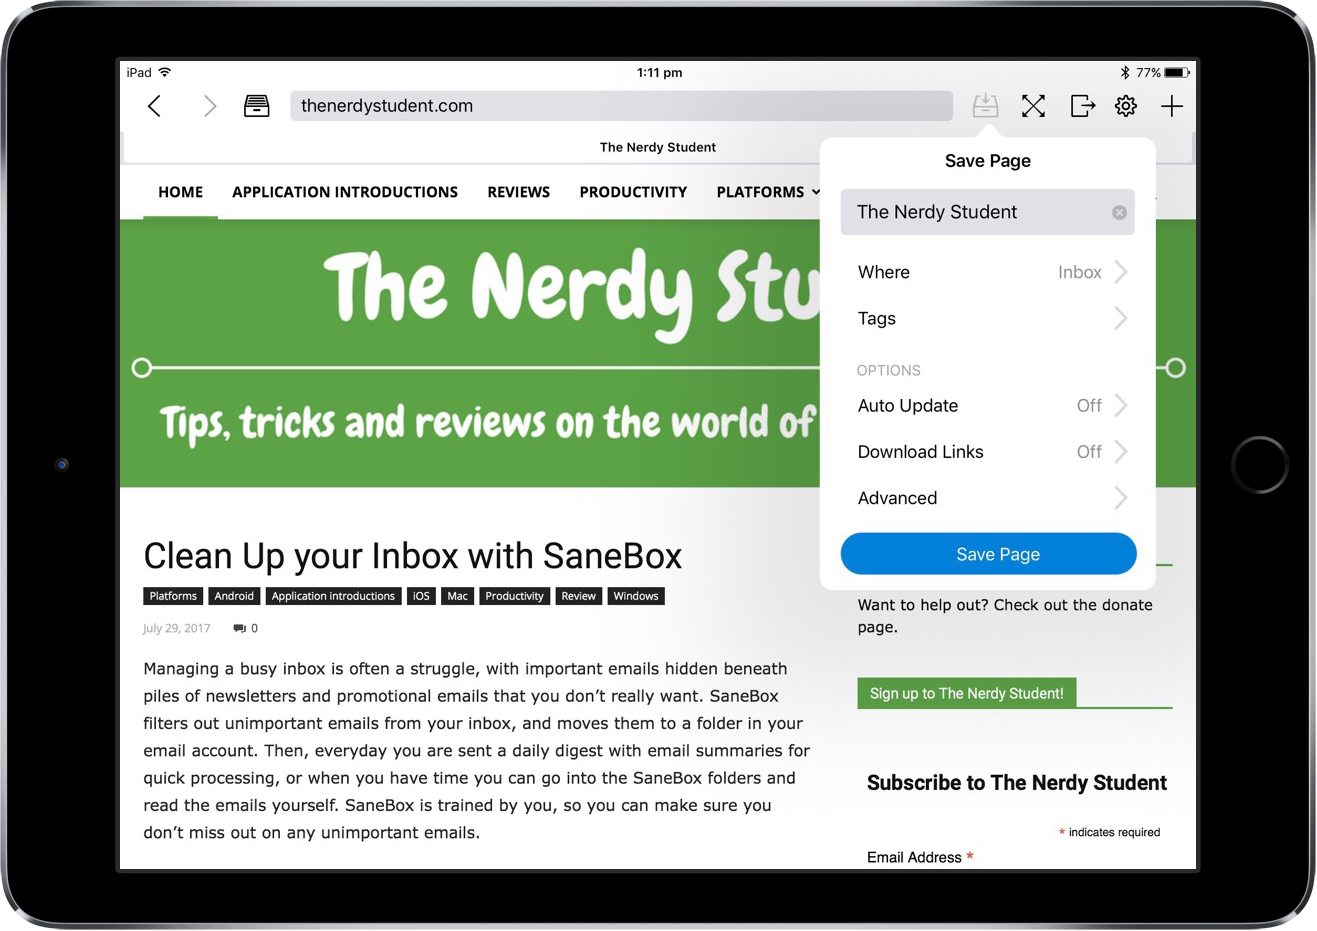 Download Entire Pages on iOS with Offline Pages – The Nerdy Student